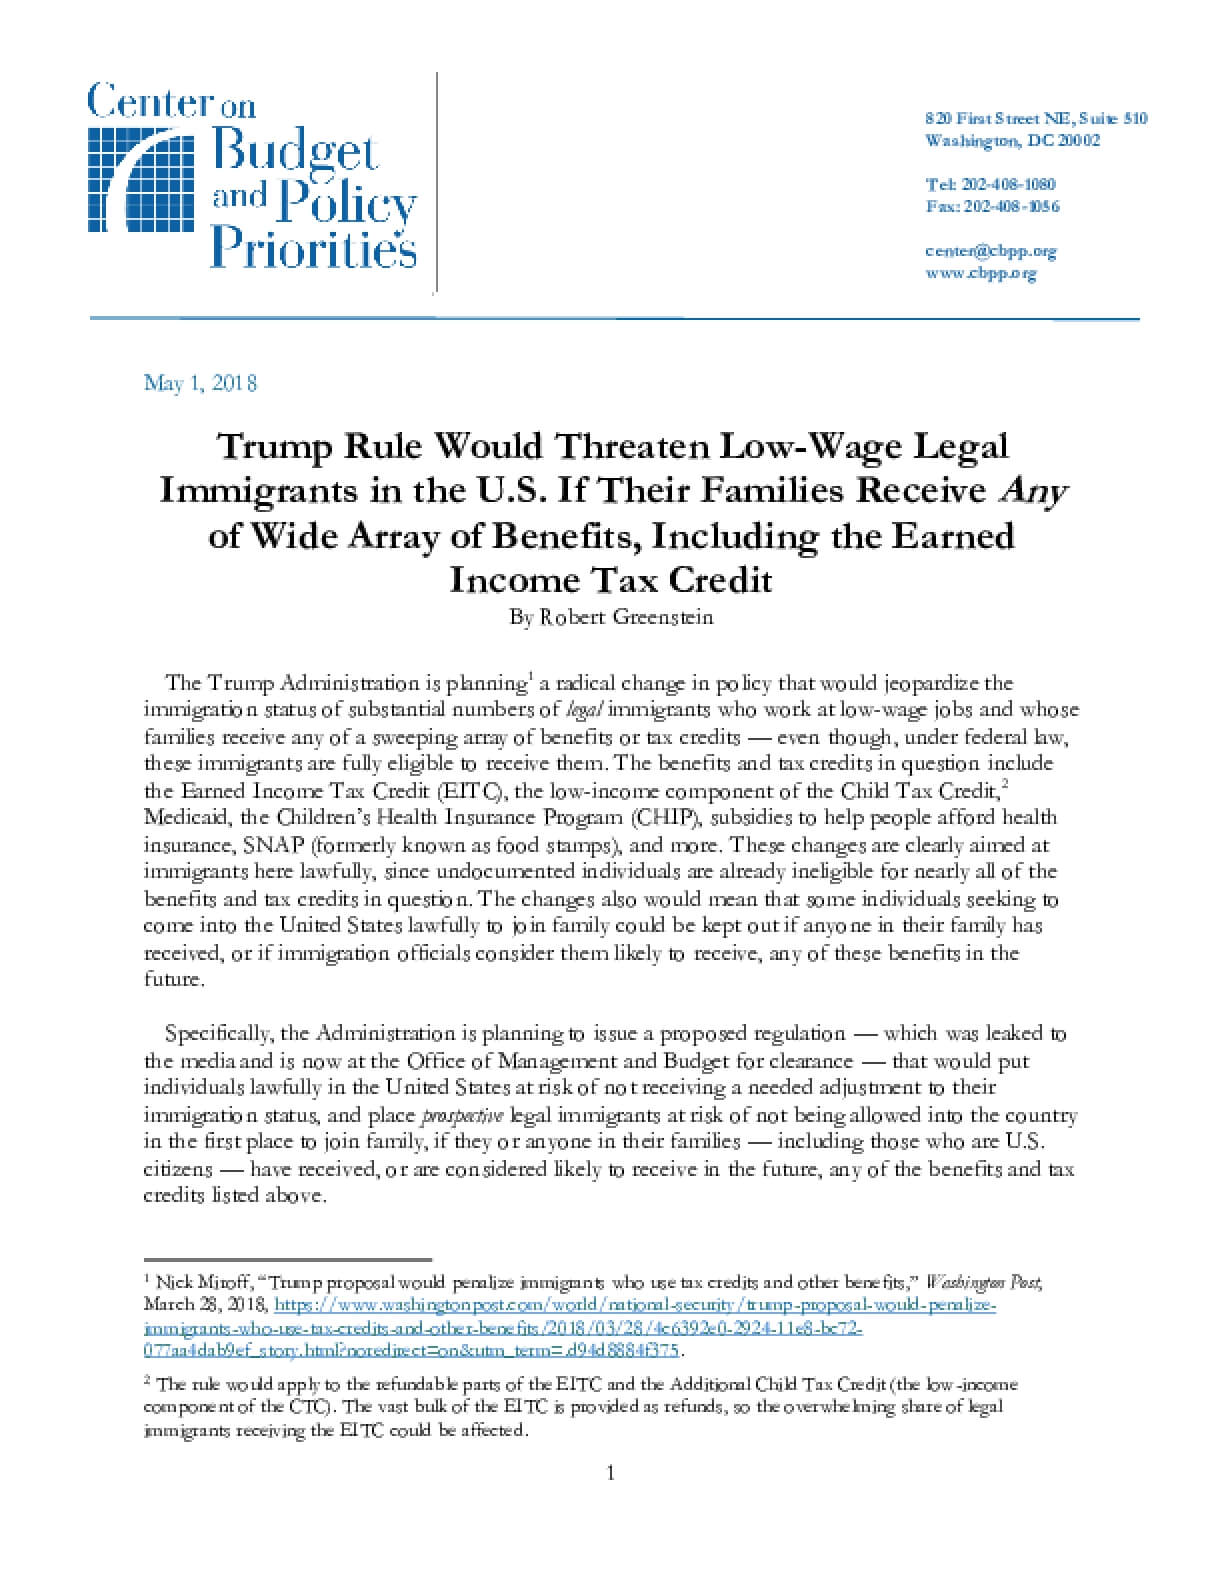 Trump Rule Would Threaten Low-Wage Legal Immigrants in the U.S. If Their Families Receive Any of Wide Array of Benefits, Including the Earned Income Tax Credit